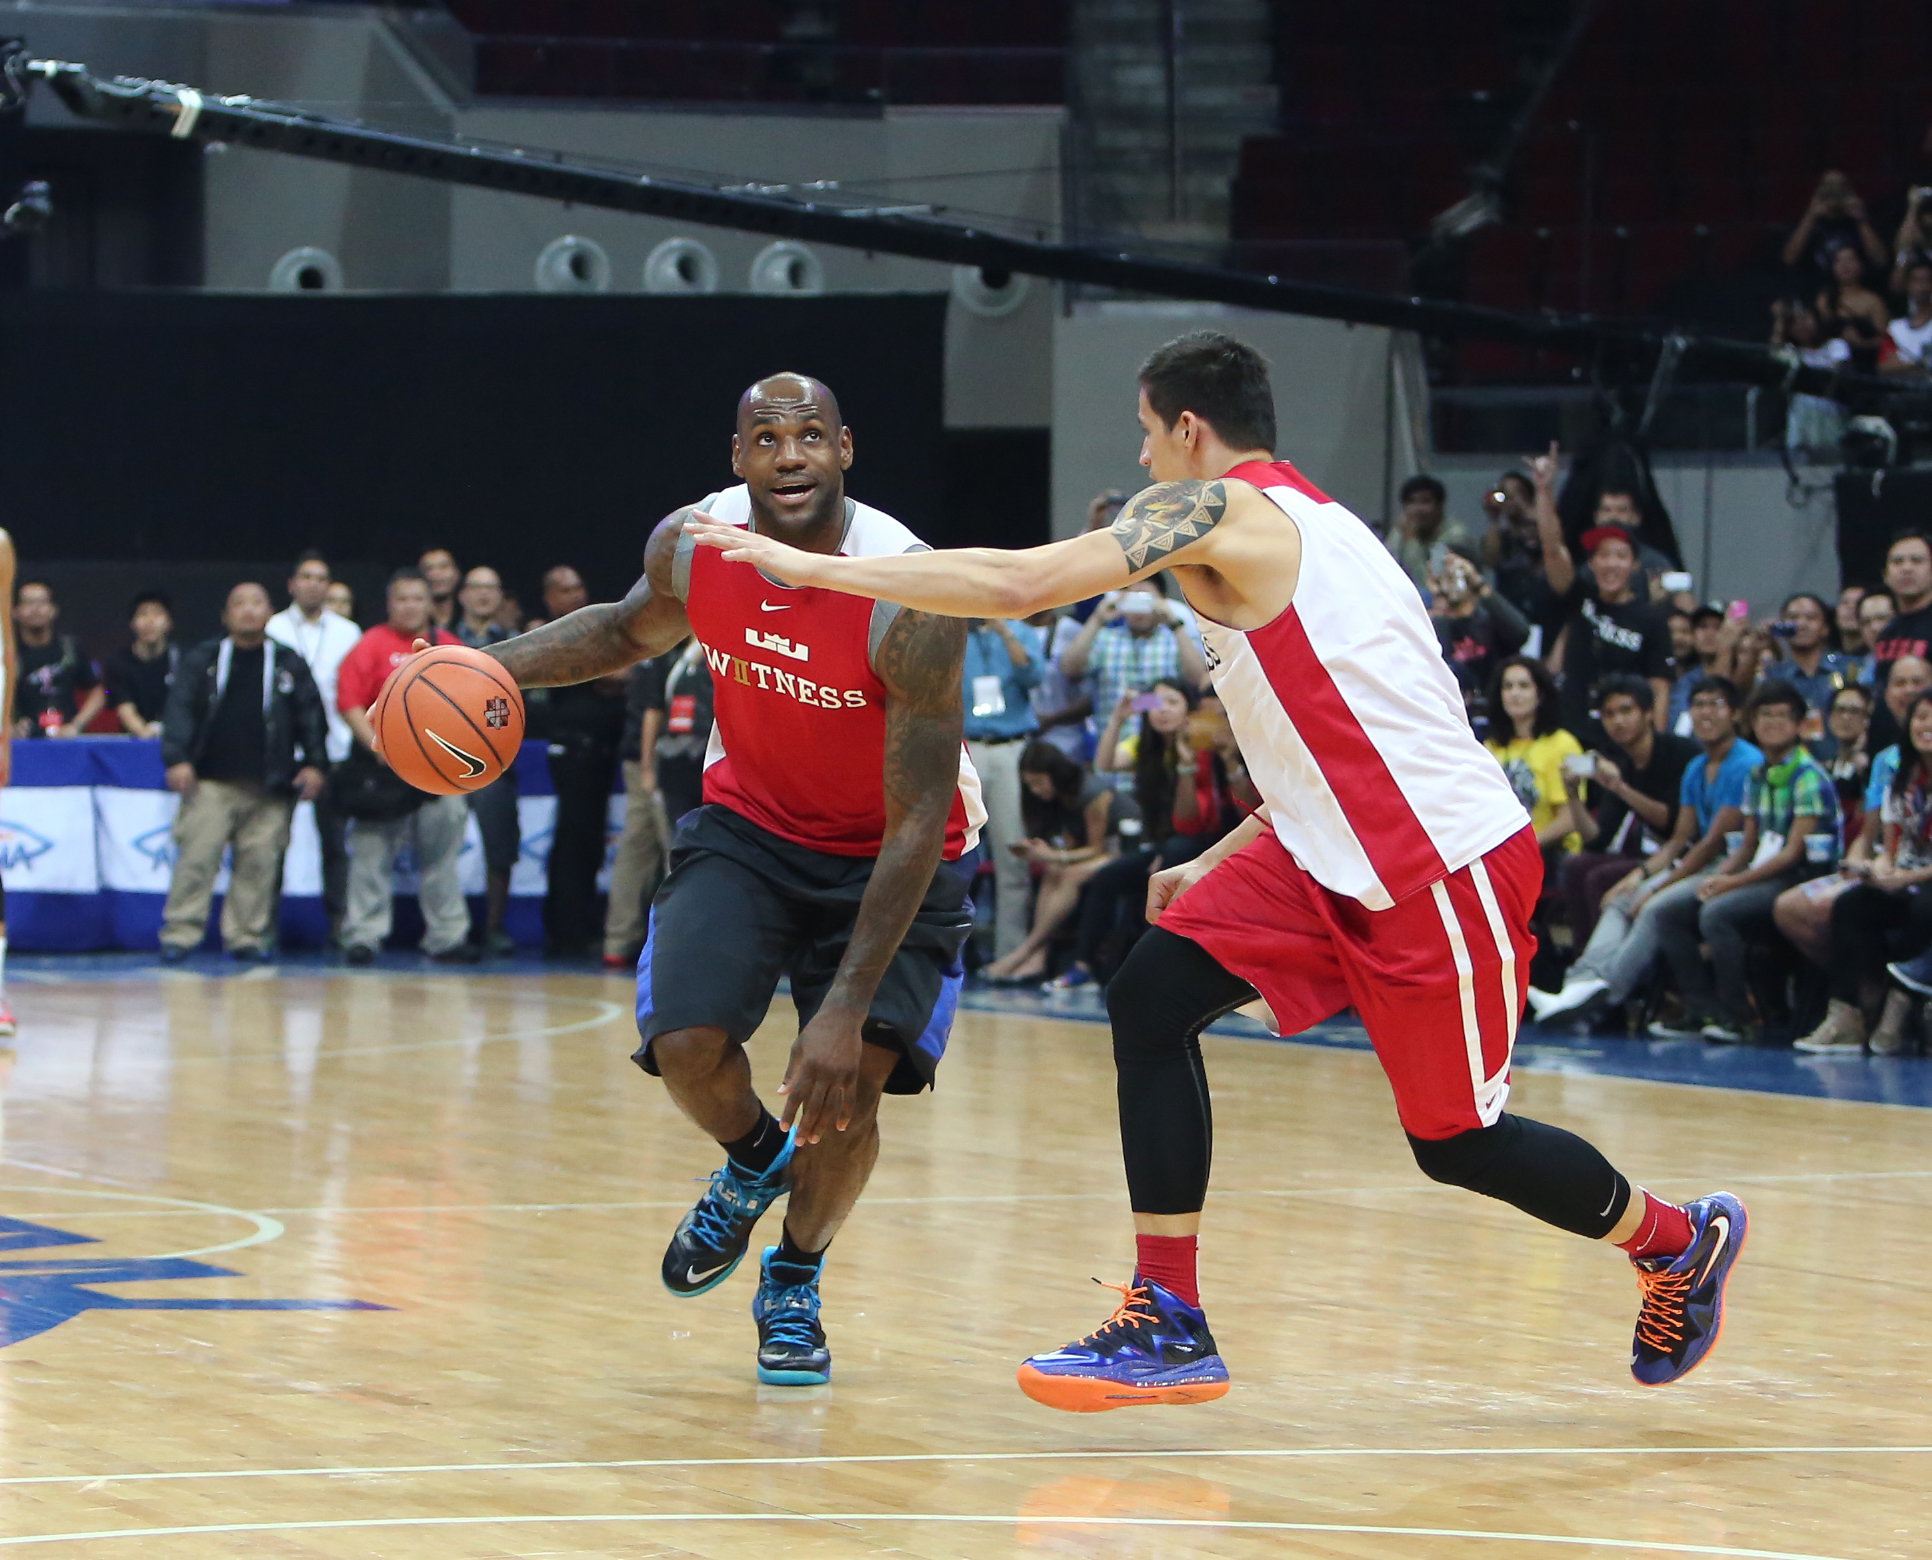 LeBron James Visits Philippines for First Time on Nike Basketball Tour.  Download Image: LO · HI